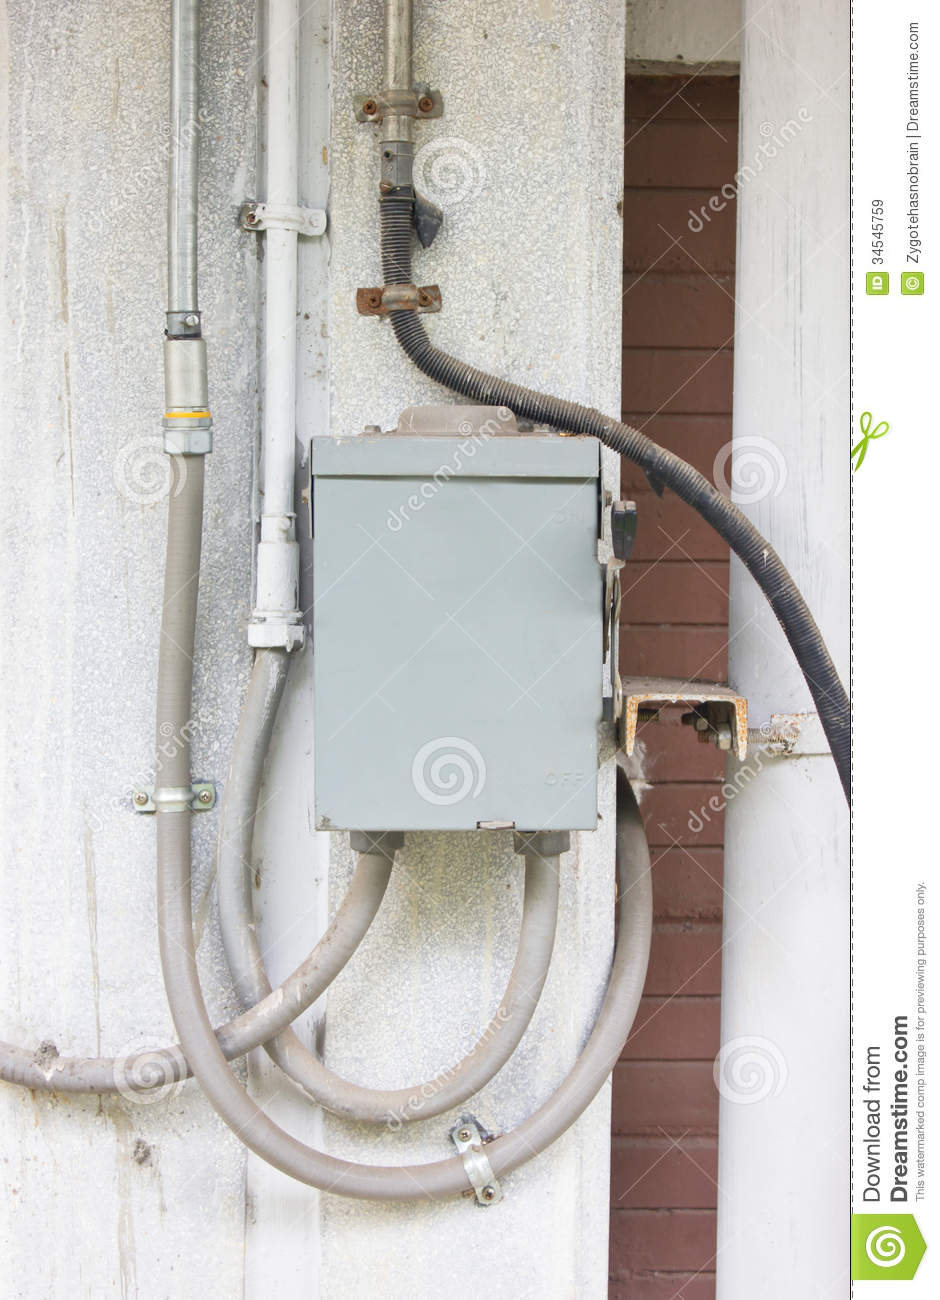 Electric control box royalty free stock images image for Motorized outside air damper